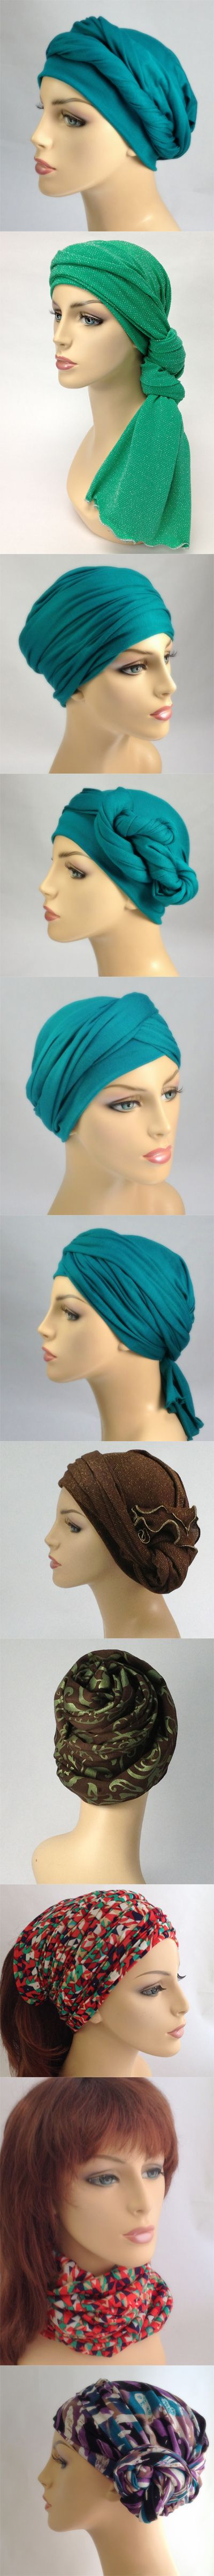 A few of the many ways to style a 1 piece TurbanDiva Wrap! So easy & no slipping when you wrap! http://www.turbandiva.com/TURBAN-HEAD-WRAPS-One-Piece_c_55.html